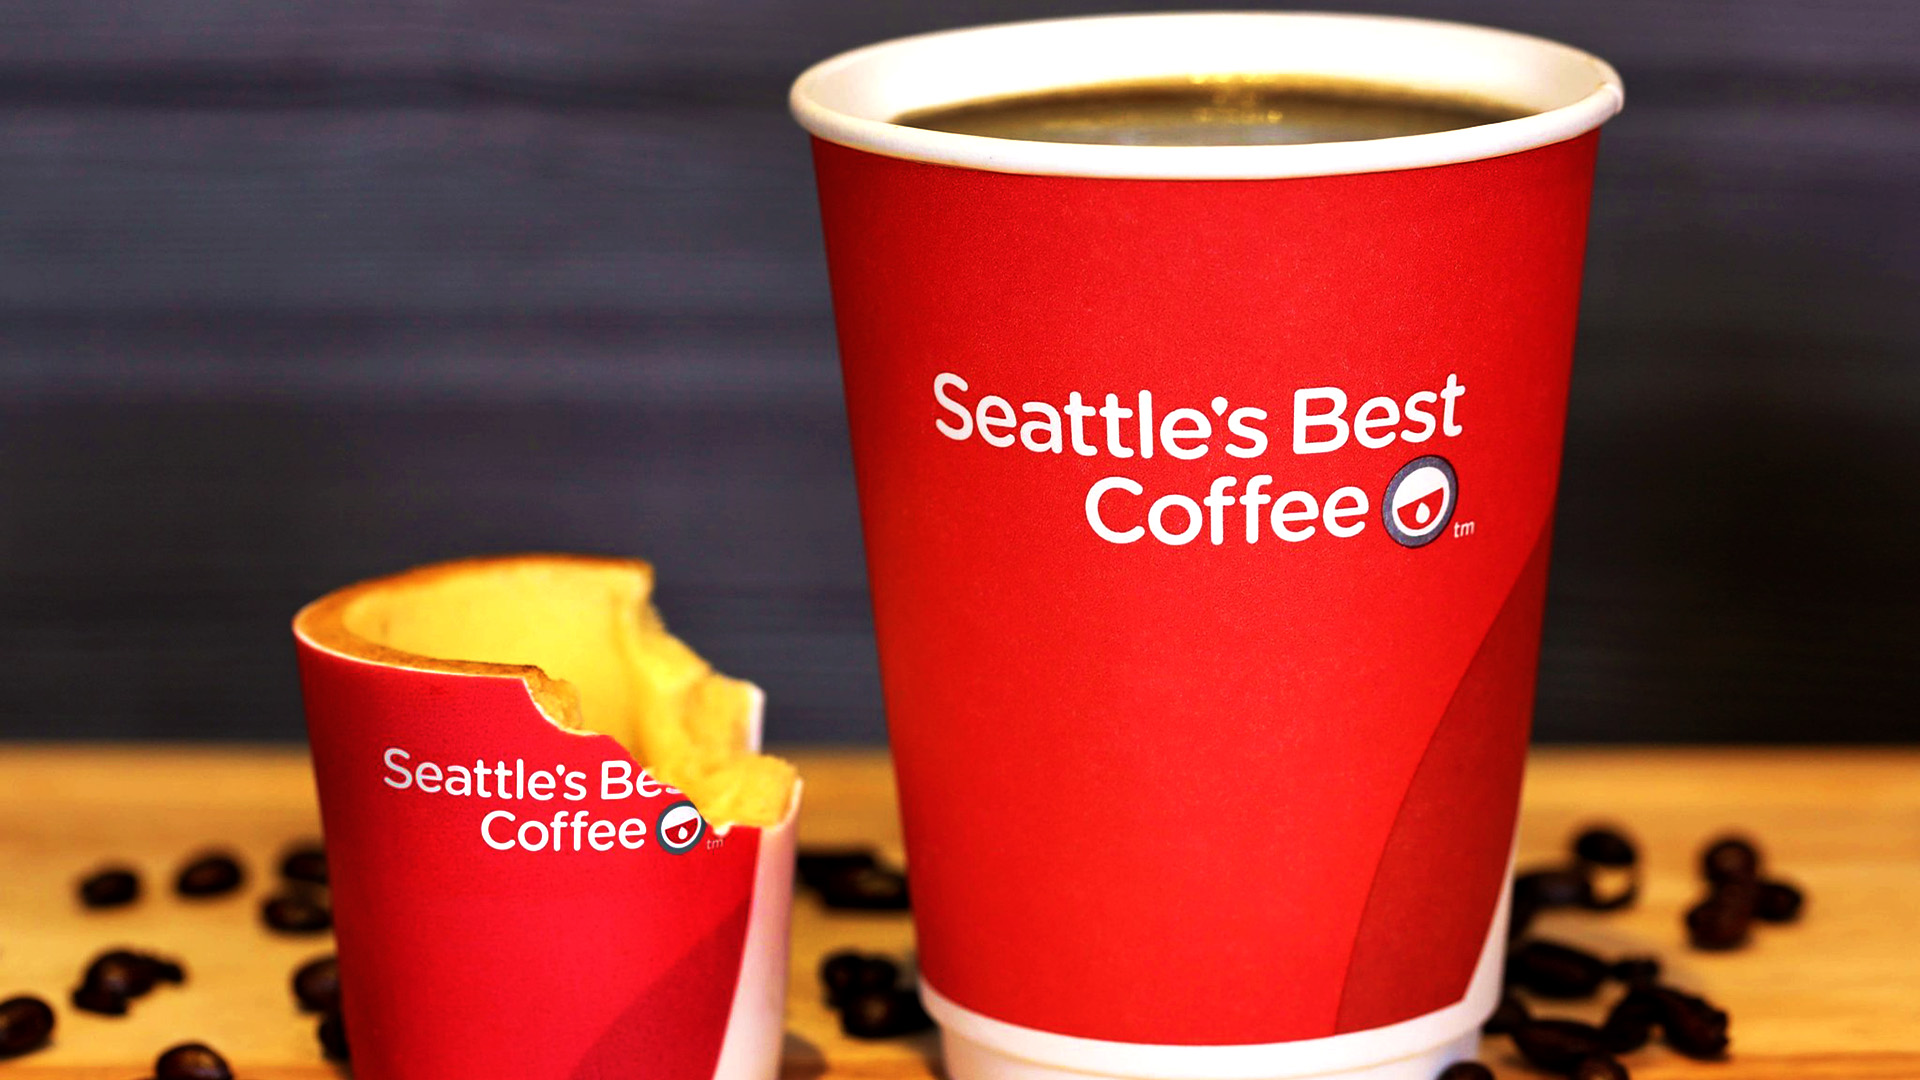 KFC and Seattle's Best Team Up To Deliver an Edible Chocolate Coffee Cup